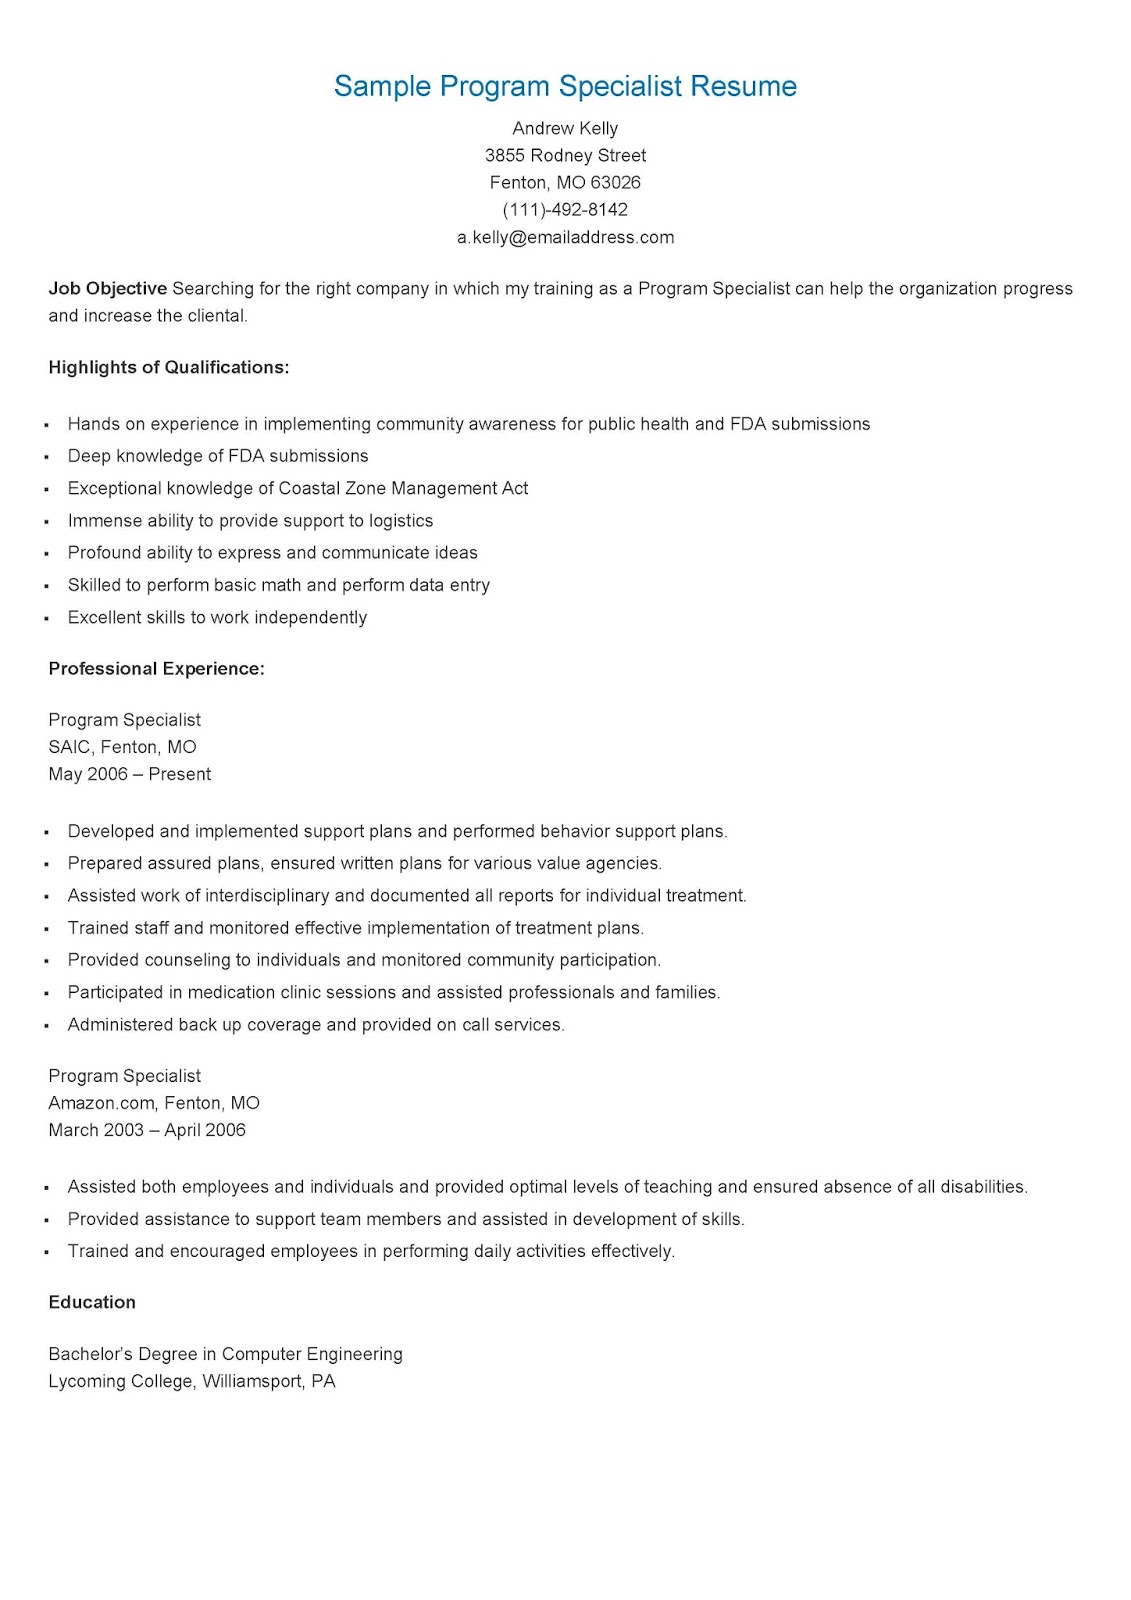 Program Specialist Sample Resume